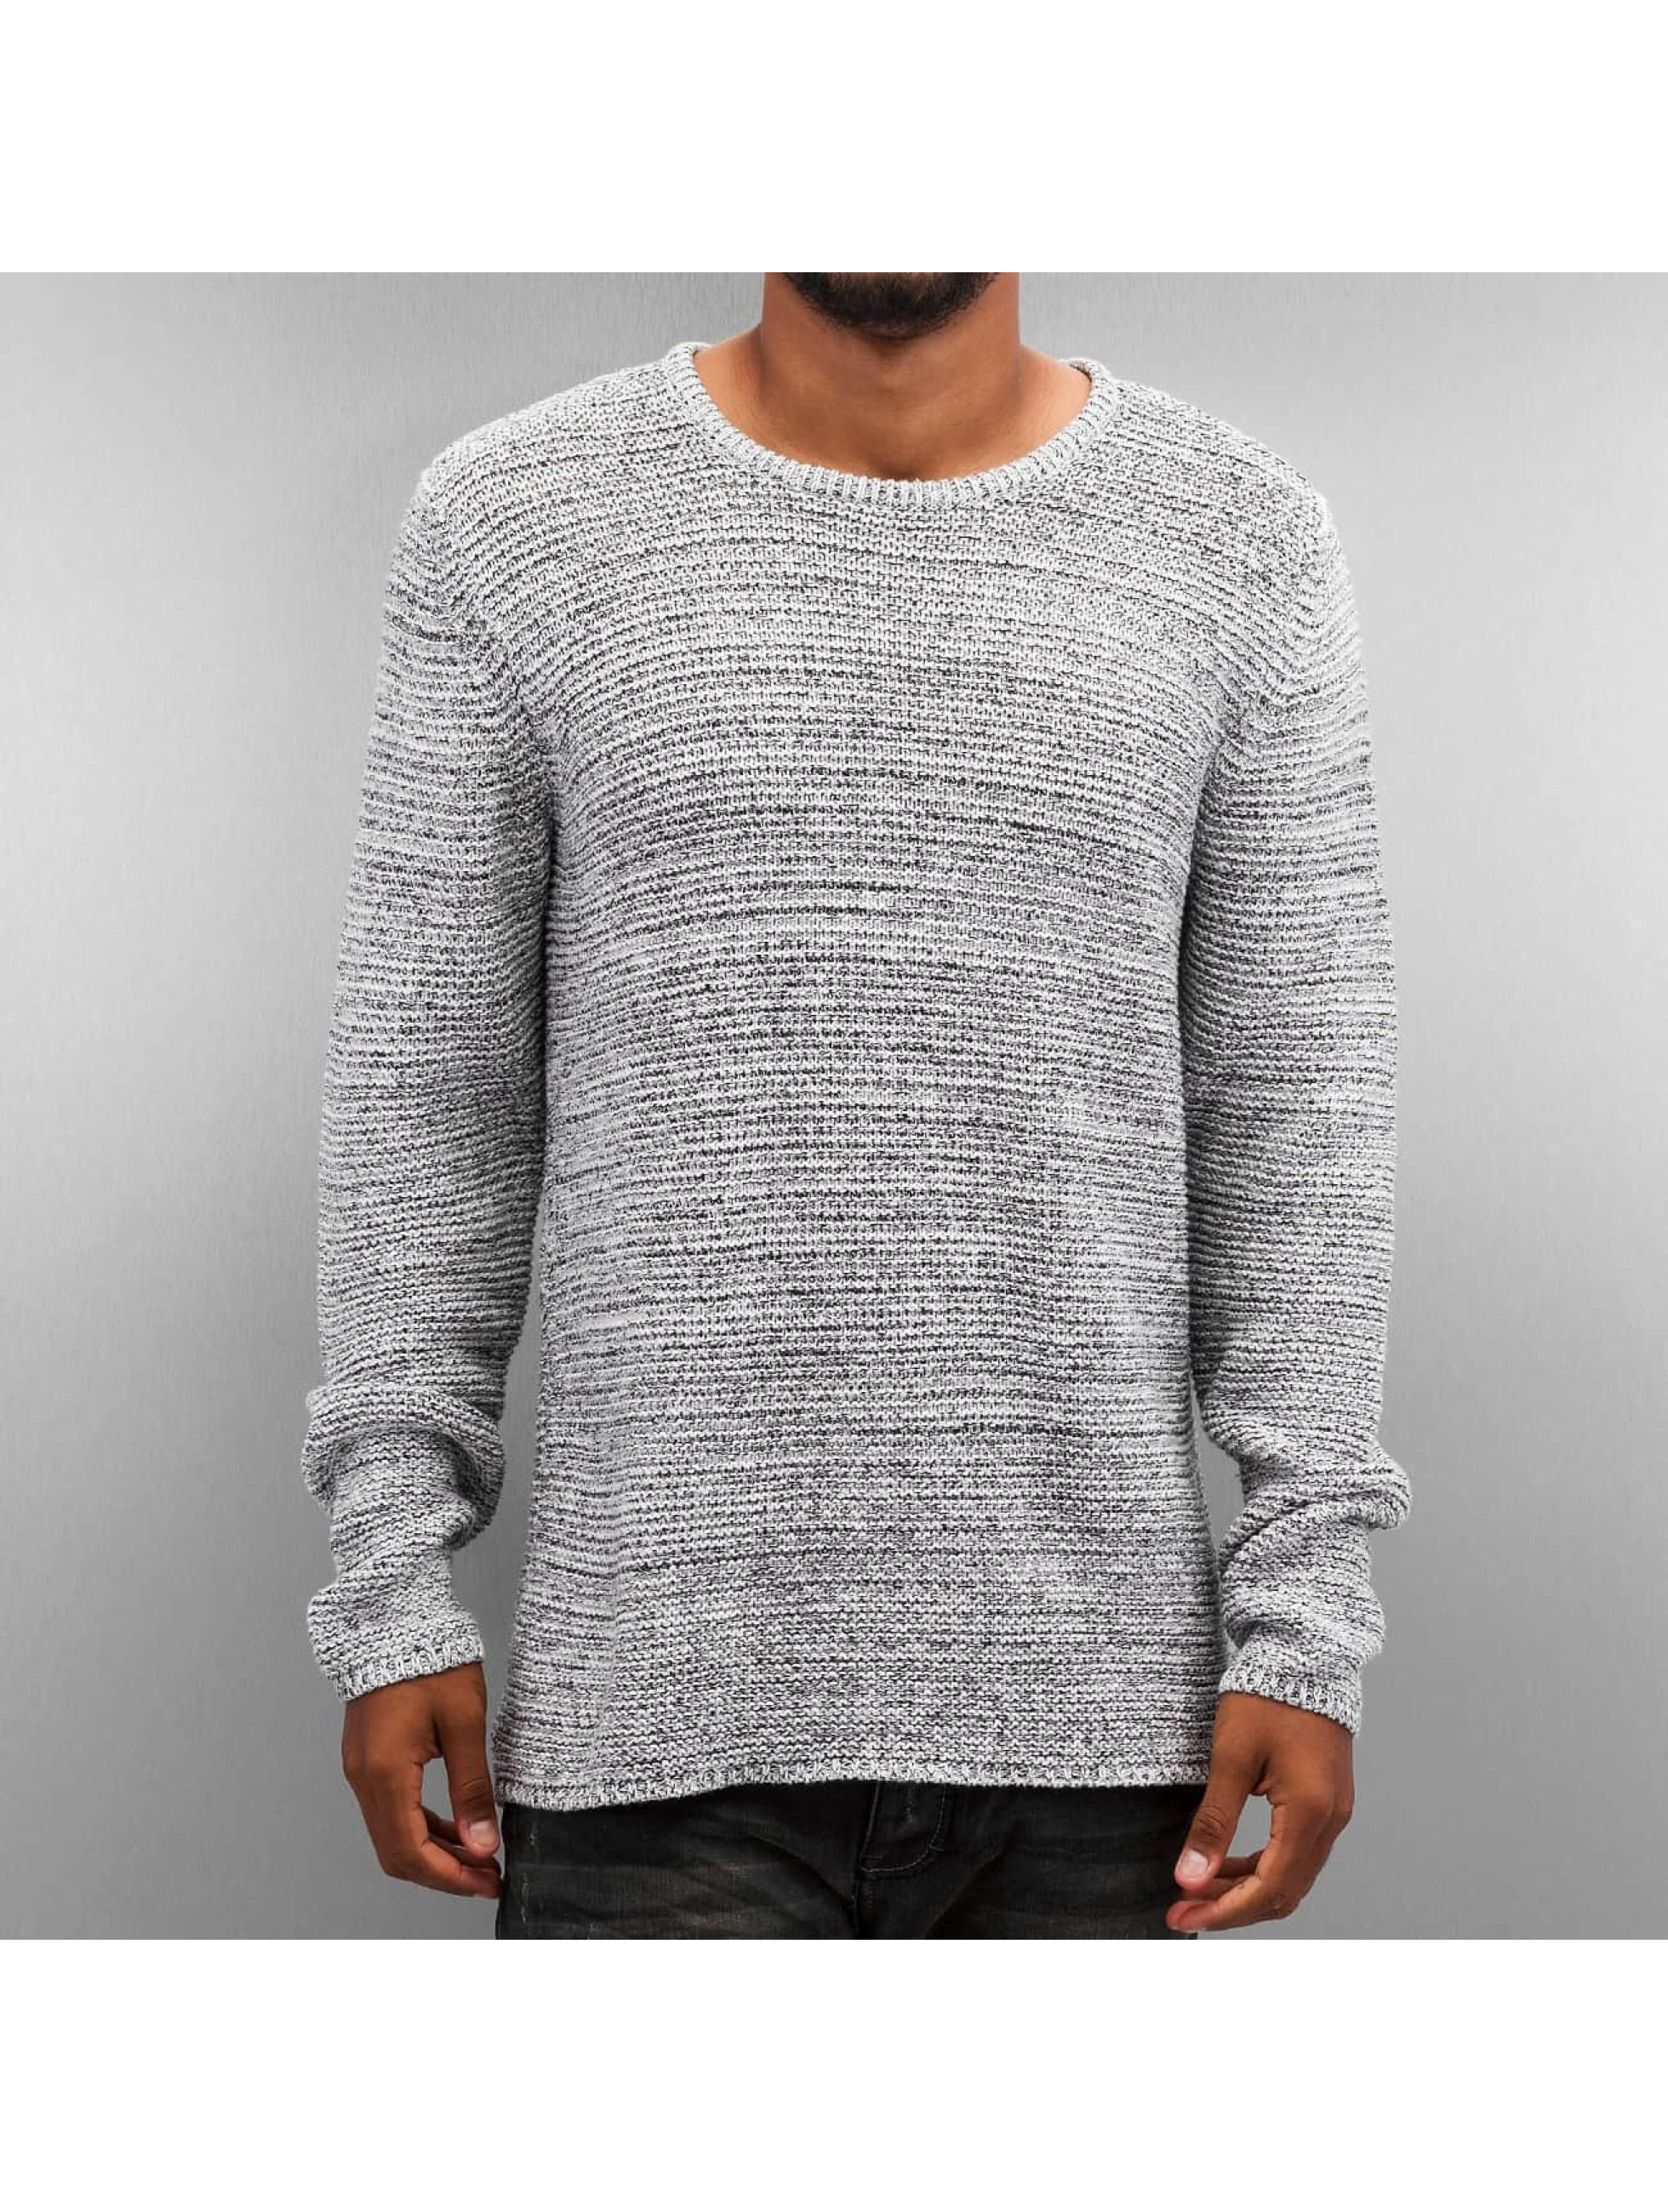 Pullover Edit in grau